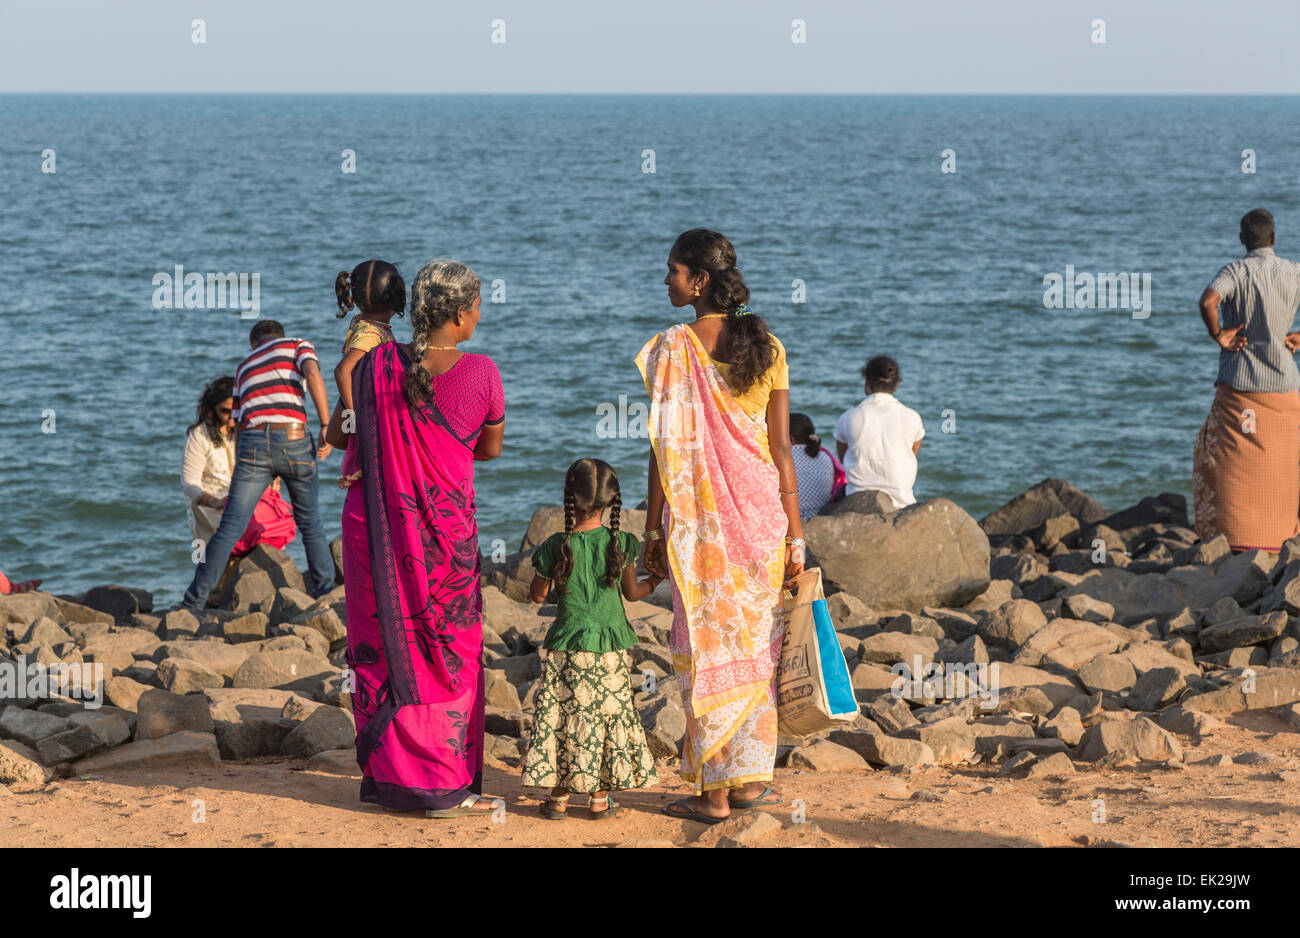 La familia indígena local en la playa en Pondicherry, o Puducherry, Tamil Nadu, en el sur de la India Foto de stock